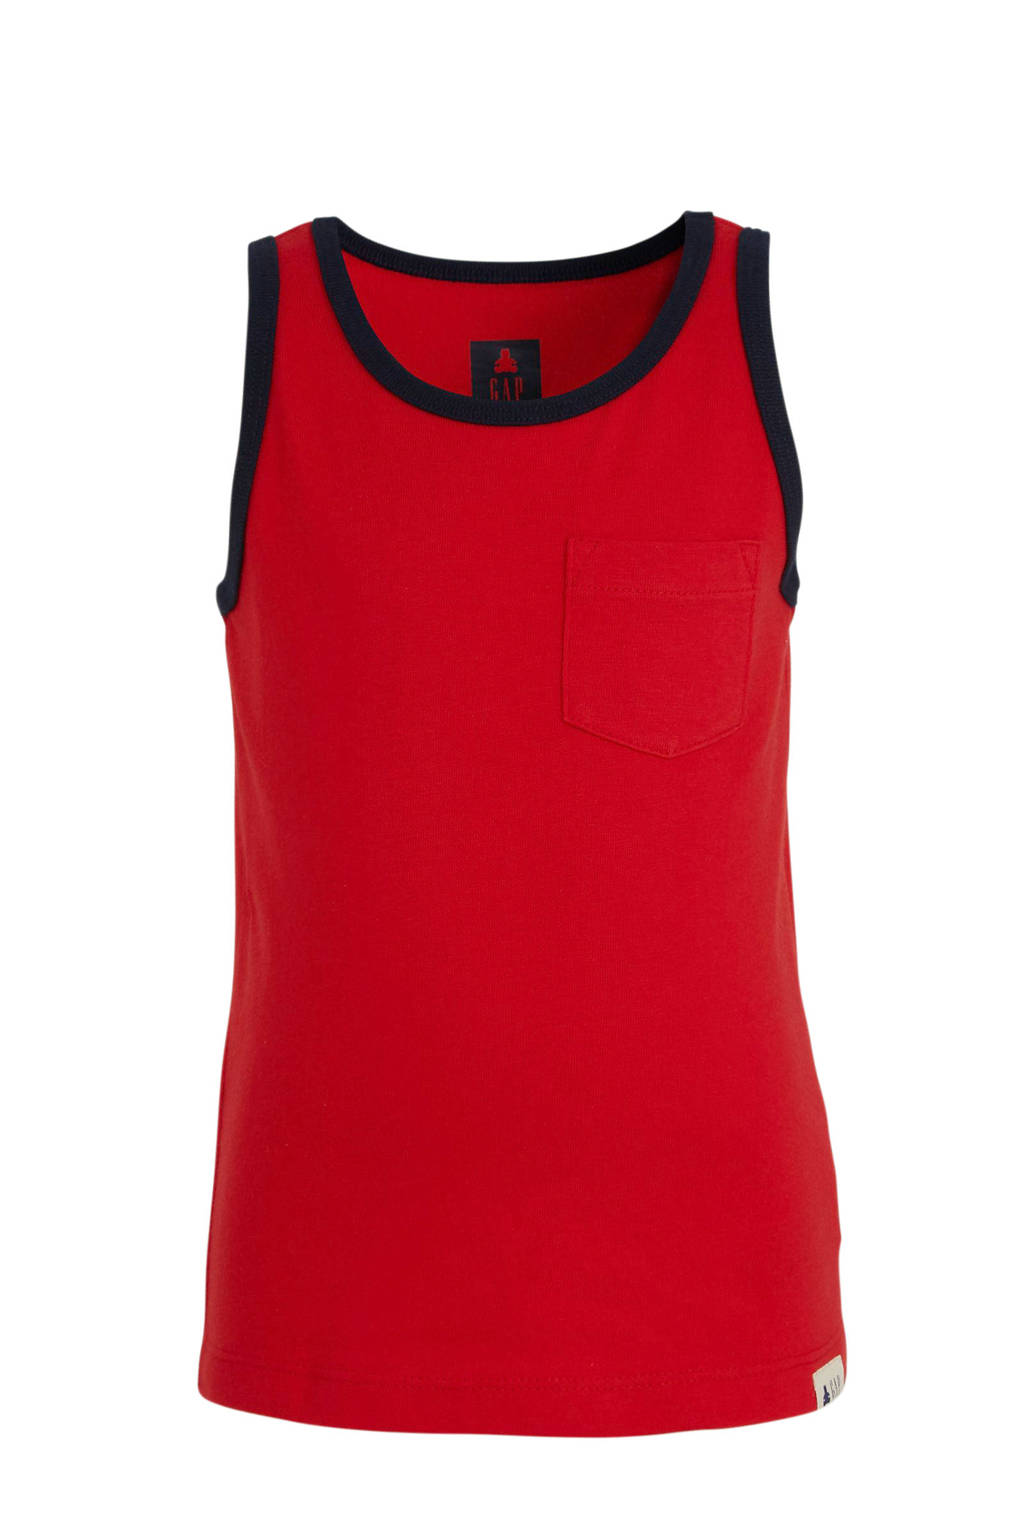 GAP singlet rood/donkerblauw, Rood/donkerblauw